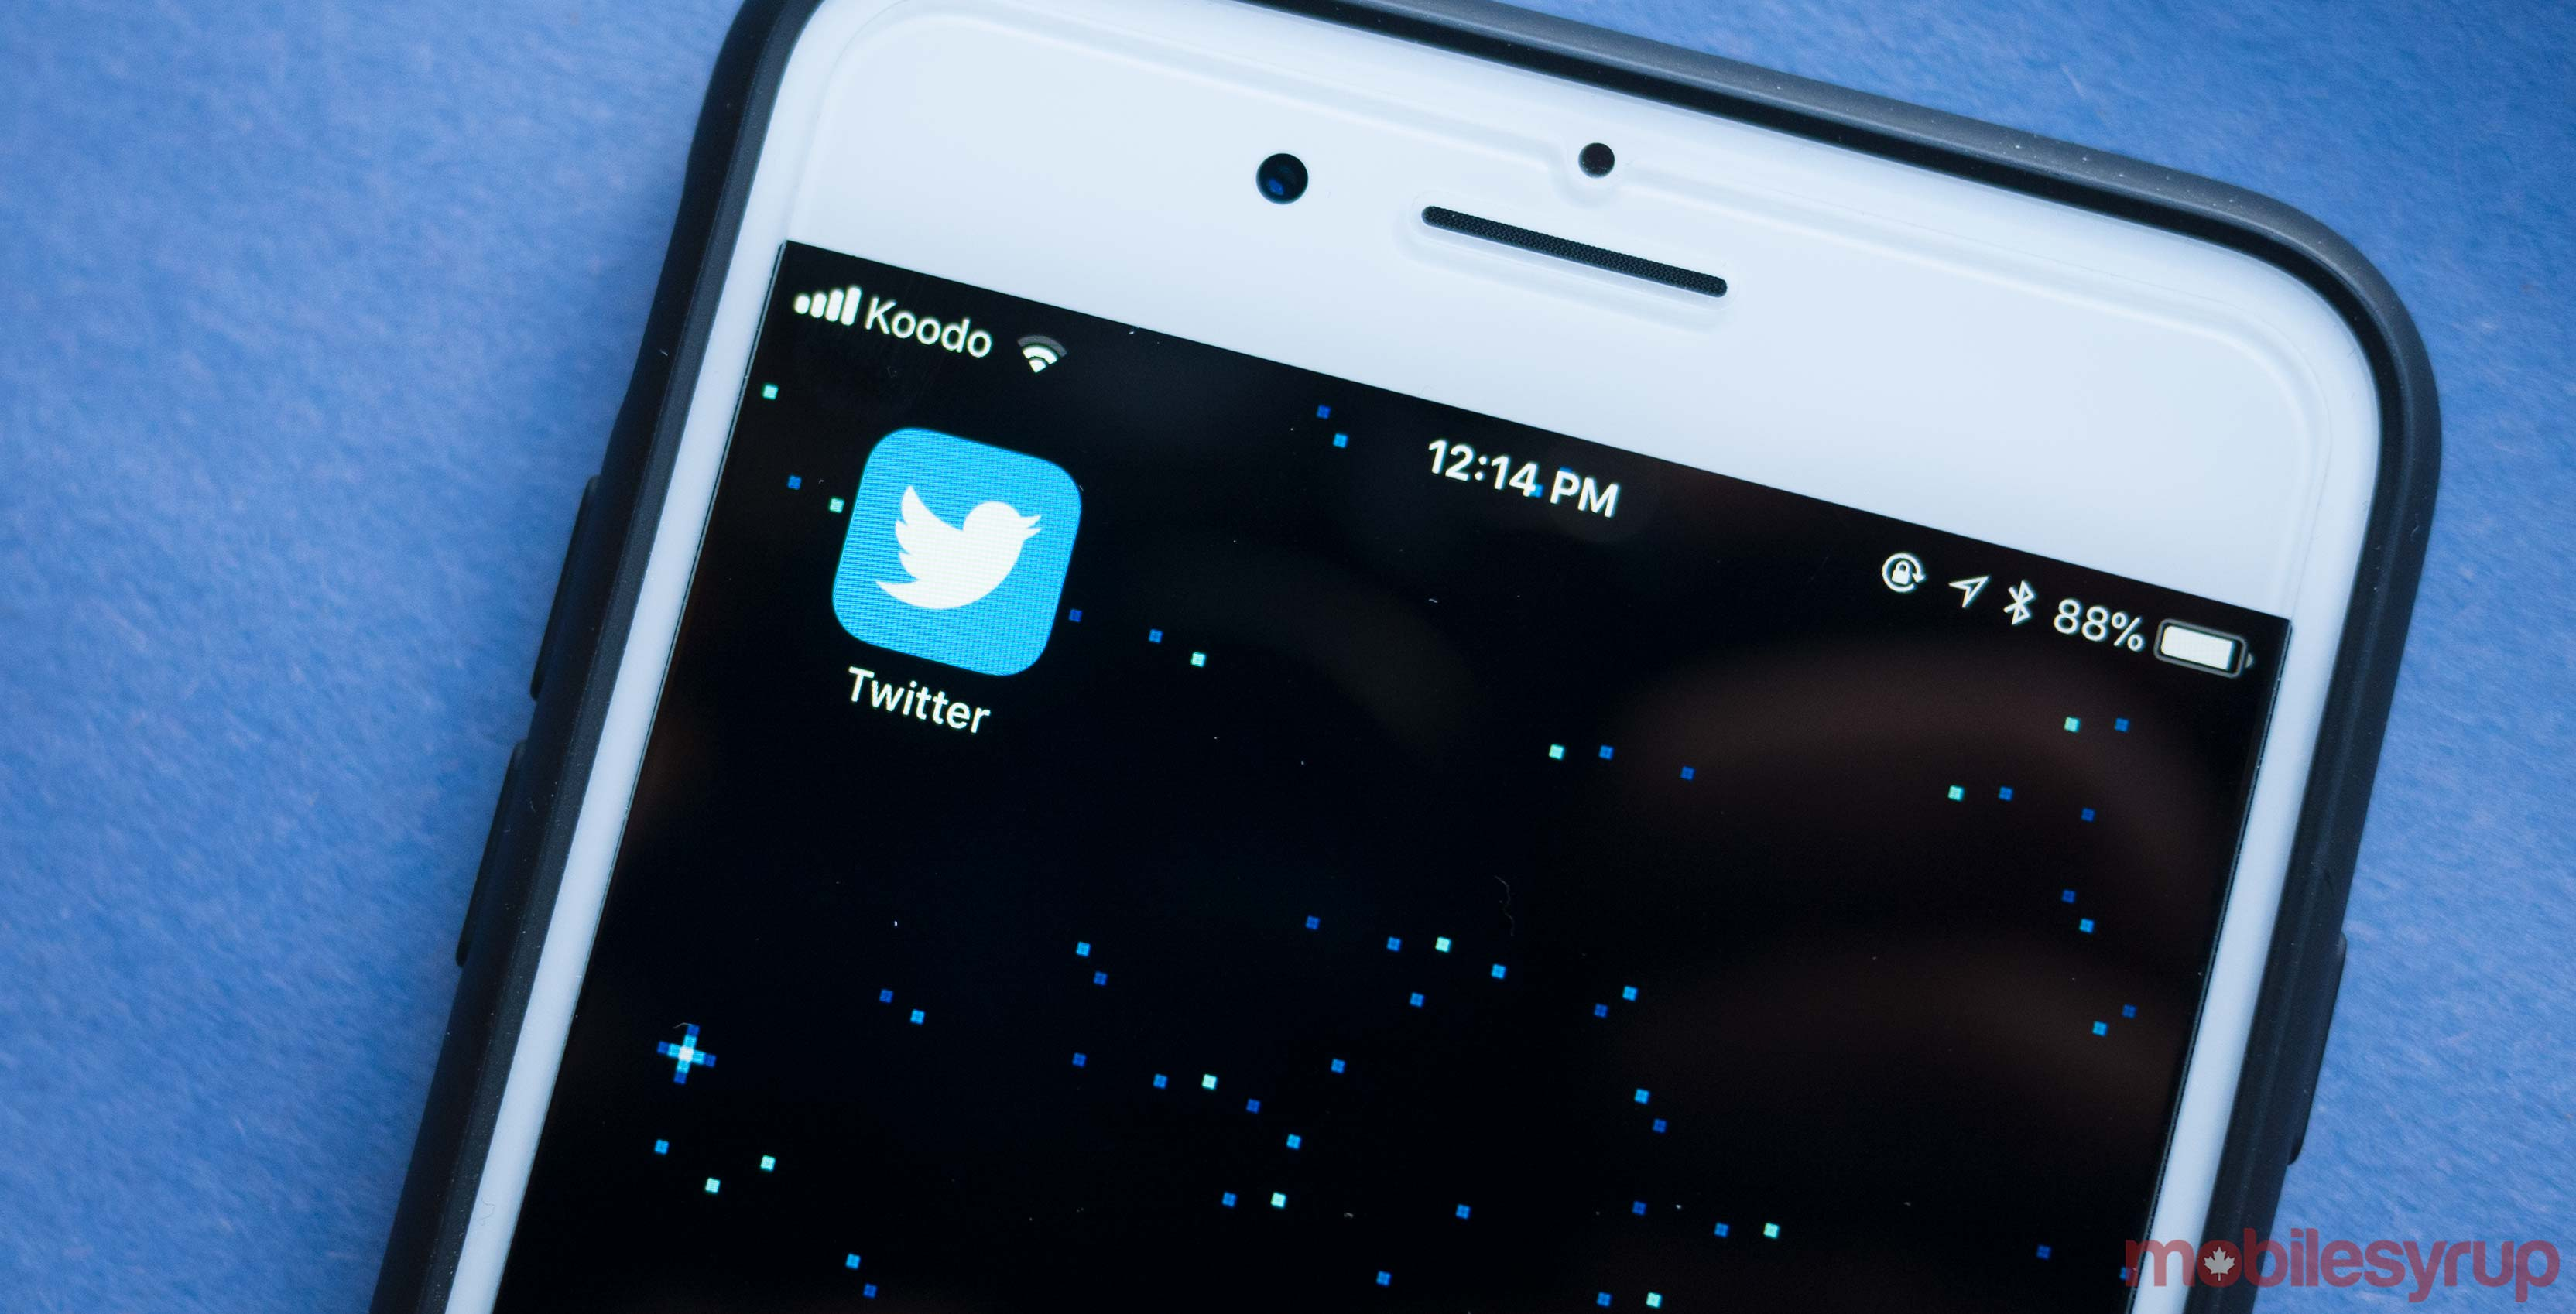 Twitter temporarily suspends ability to tweet via text